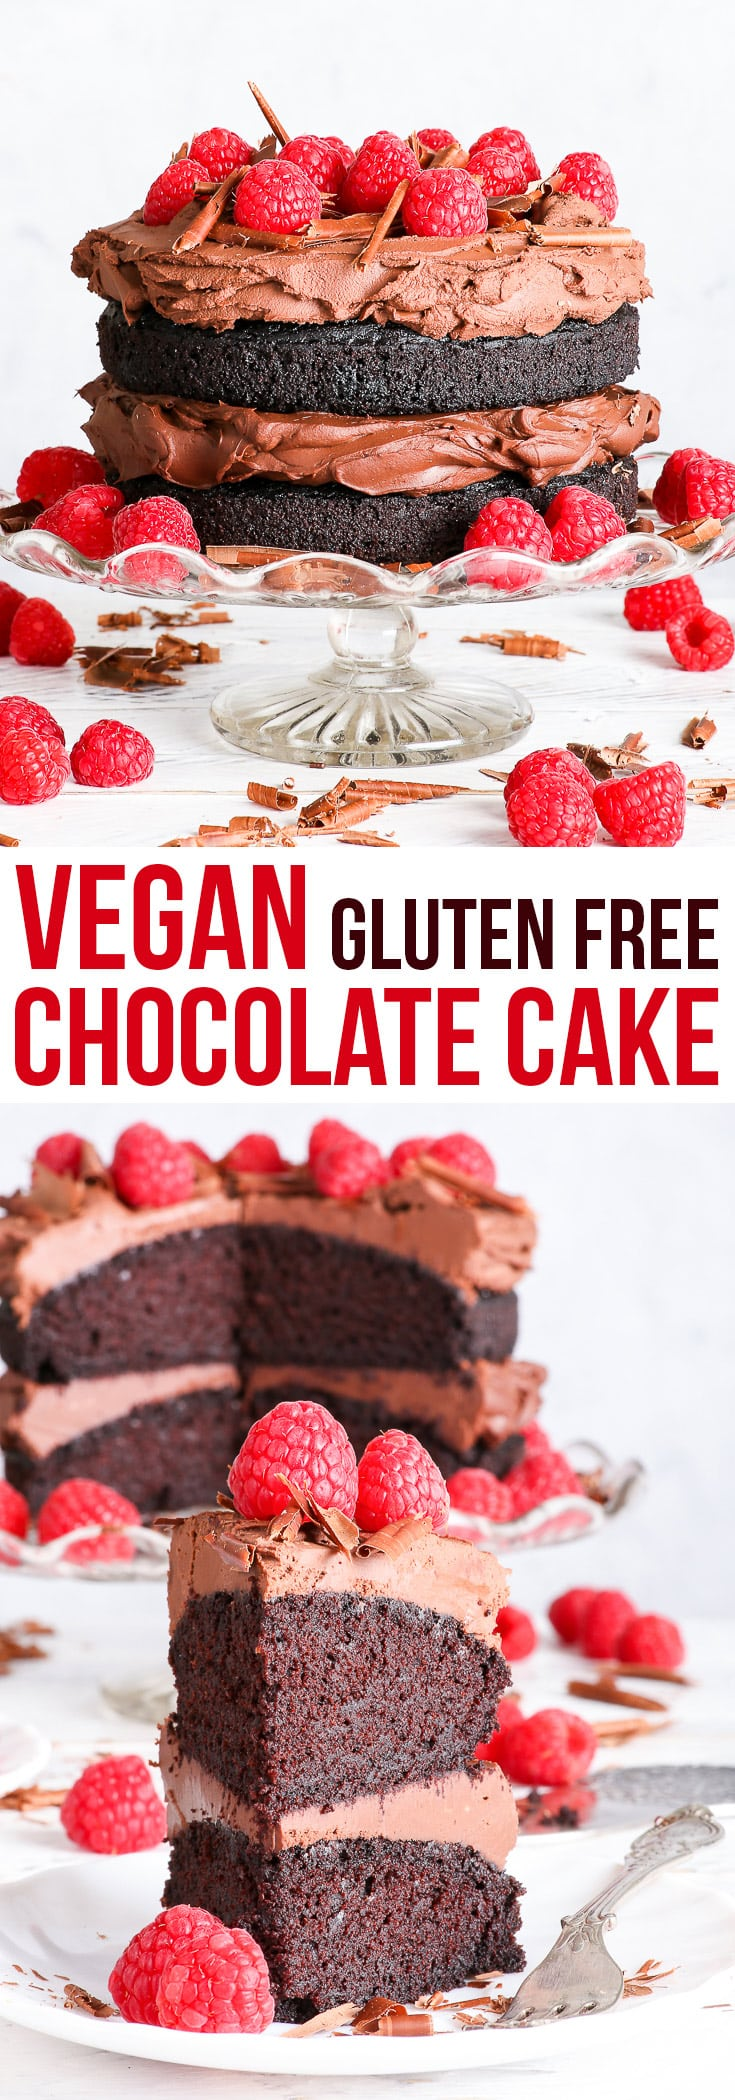 The Best Gluten Free Vegan Chocolate Cake {gluten, dairy, egg, nut & soy free, vegan} - This gluten free vegan chocolate cake will blow you away – with how it looks, how it tastes and how incredibly easy it is to prepare. No fuss, no weird fancy ingredients, only an hour of your time… and you've got yourself a decadent, gorgeous gluten free vegan cake. #vegan #glutefree #dairyfree #chocolate #cake